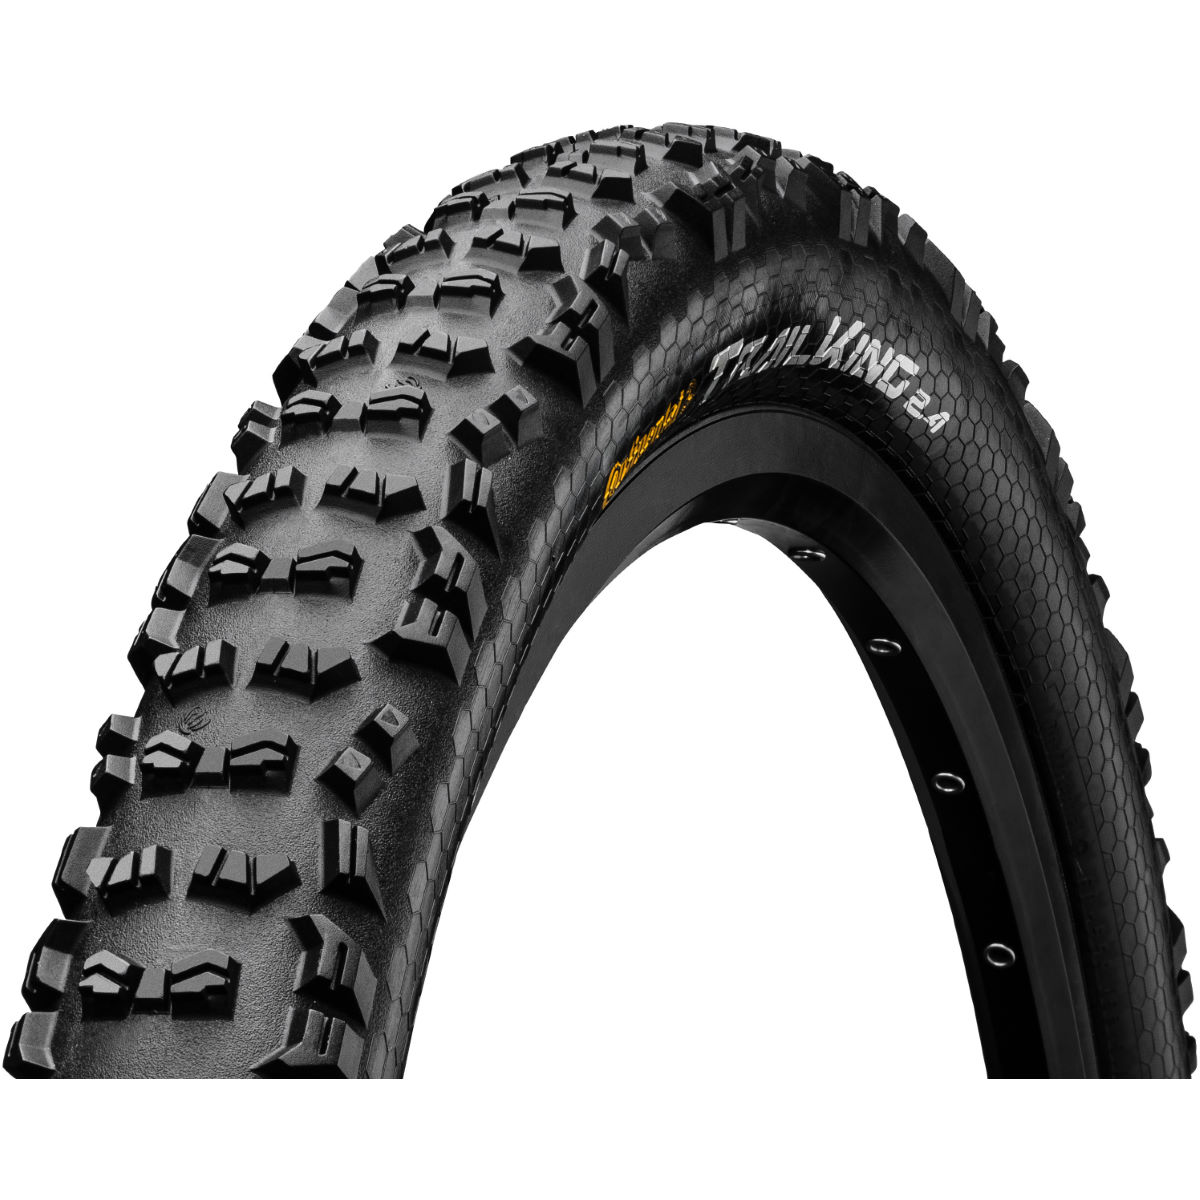 Continental Continental Trail King Folding MTB Tyre - Protection Apex   Tyres